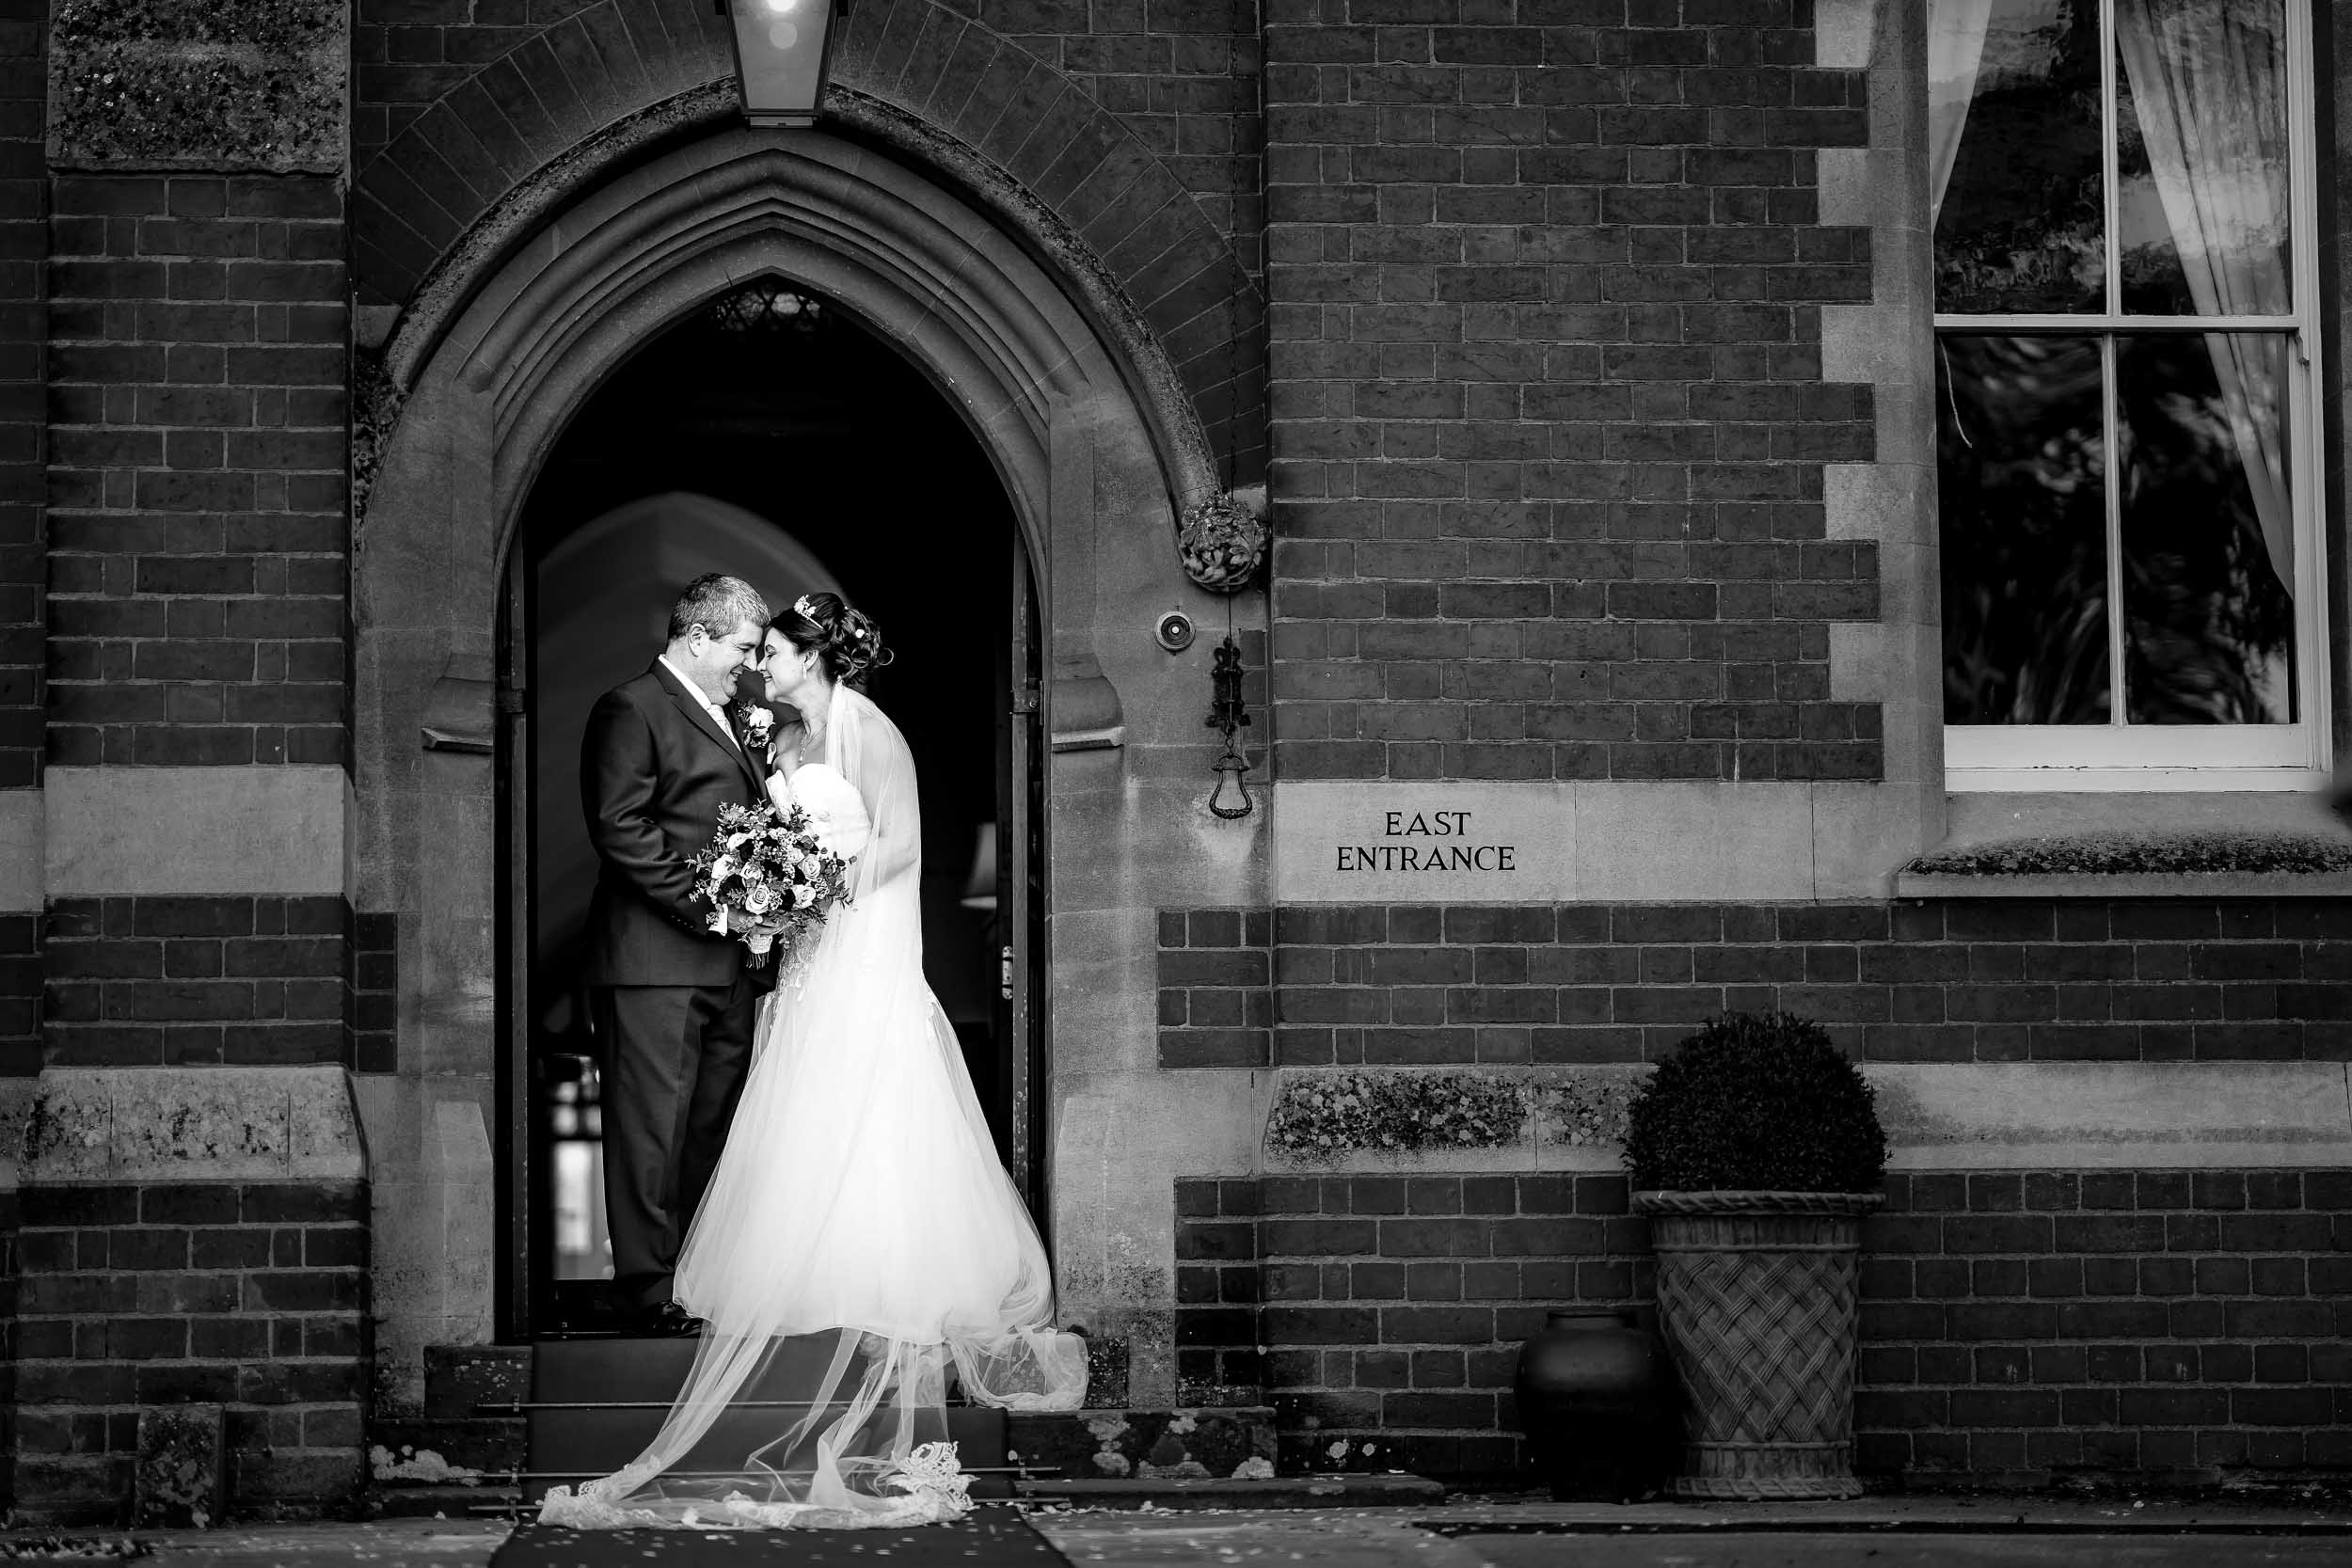 Stanbrook Abbey wedding photographer, Wedding Photographers, Herefordshire wedding photographers, Worcestershire wedding Photographers, Stanbrook Abbey Hotel